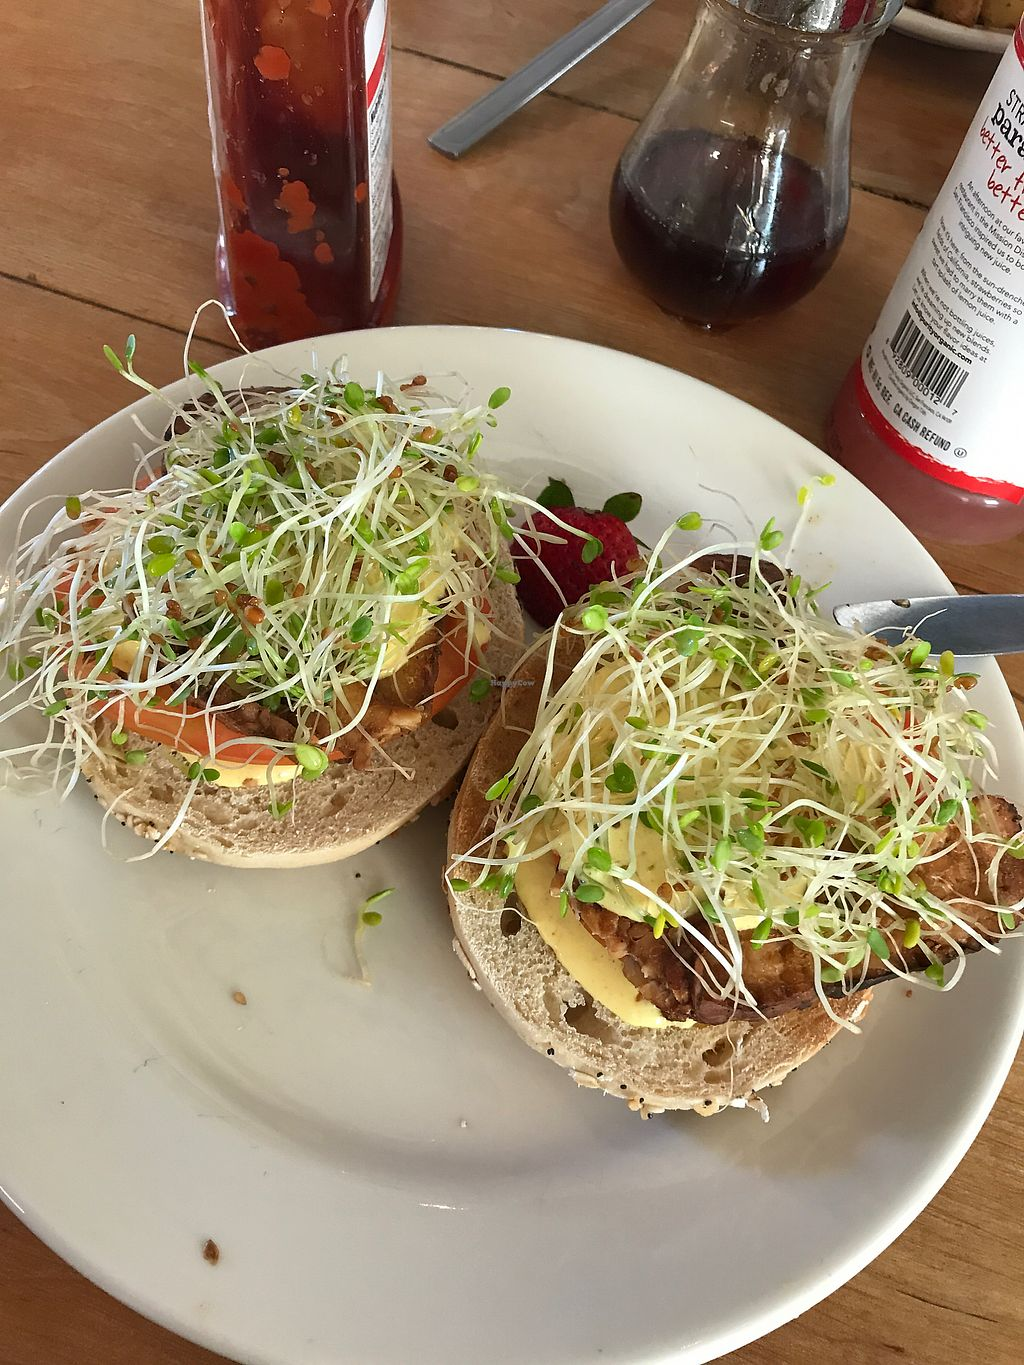 """Photo of Cafe Evolution  by <a href=""""/members/profile/KrystalPotenza"""">KrystalPotenza</a> <br/>bagel Benedict. phenomenal  <br/> July 30, 2017  - <a href='/contact/abuse/image/9268/286697'>Report</a>"""